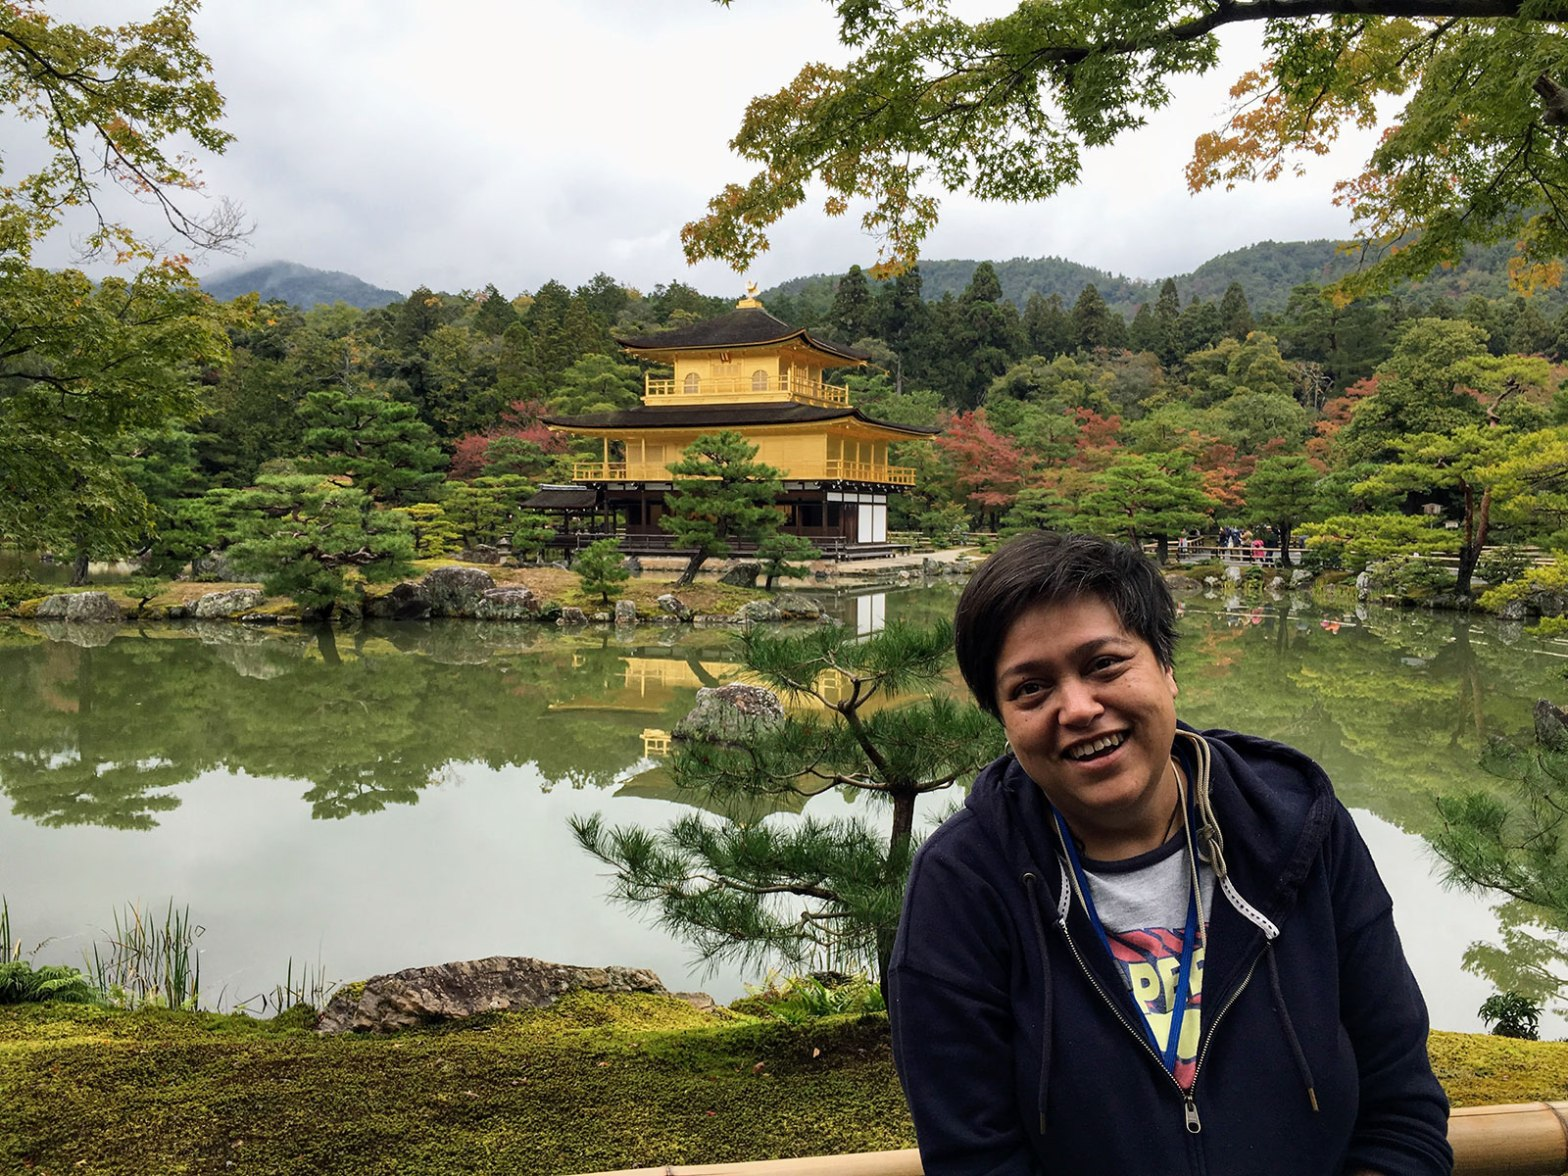 Caroline at Kinkaku-ji